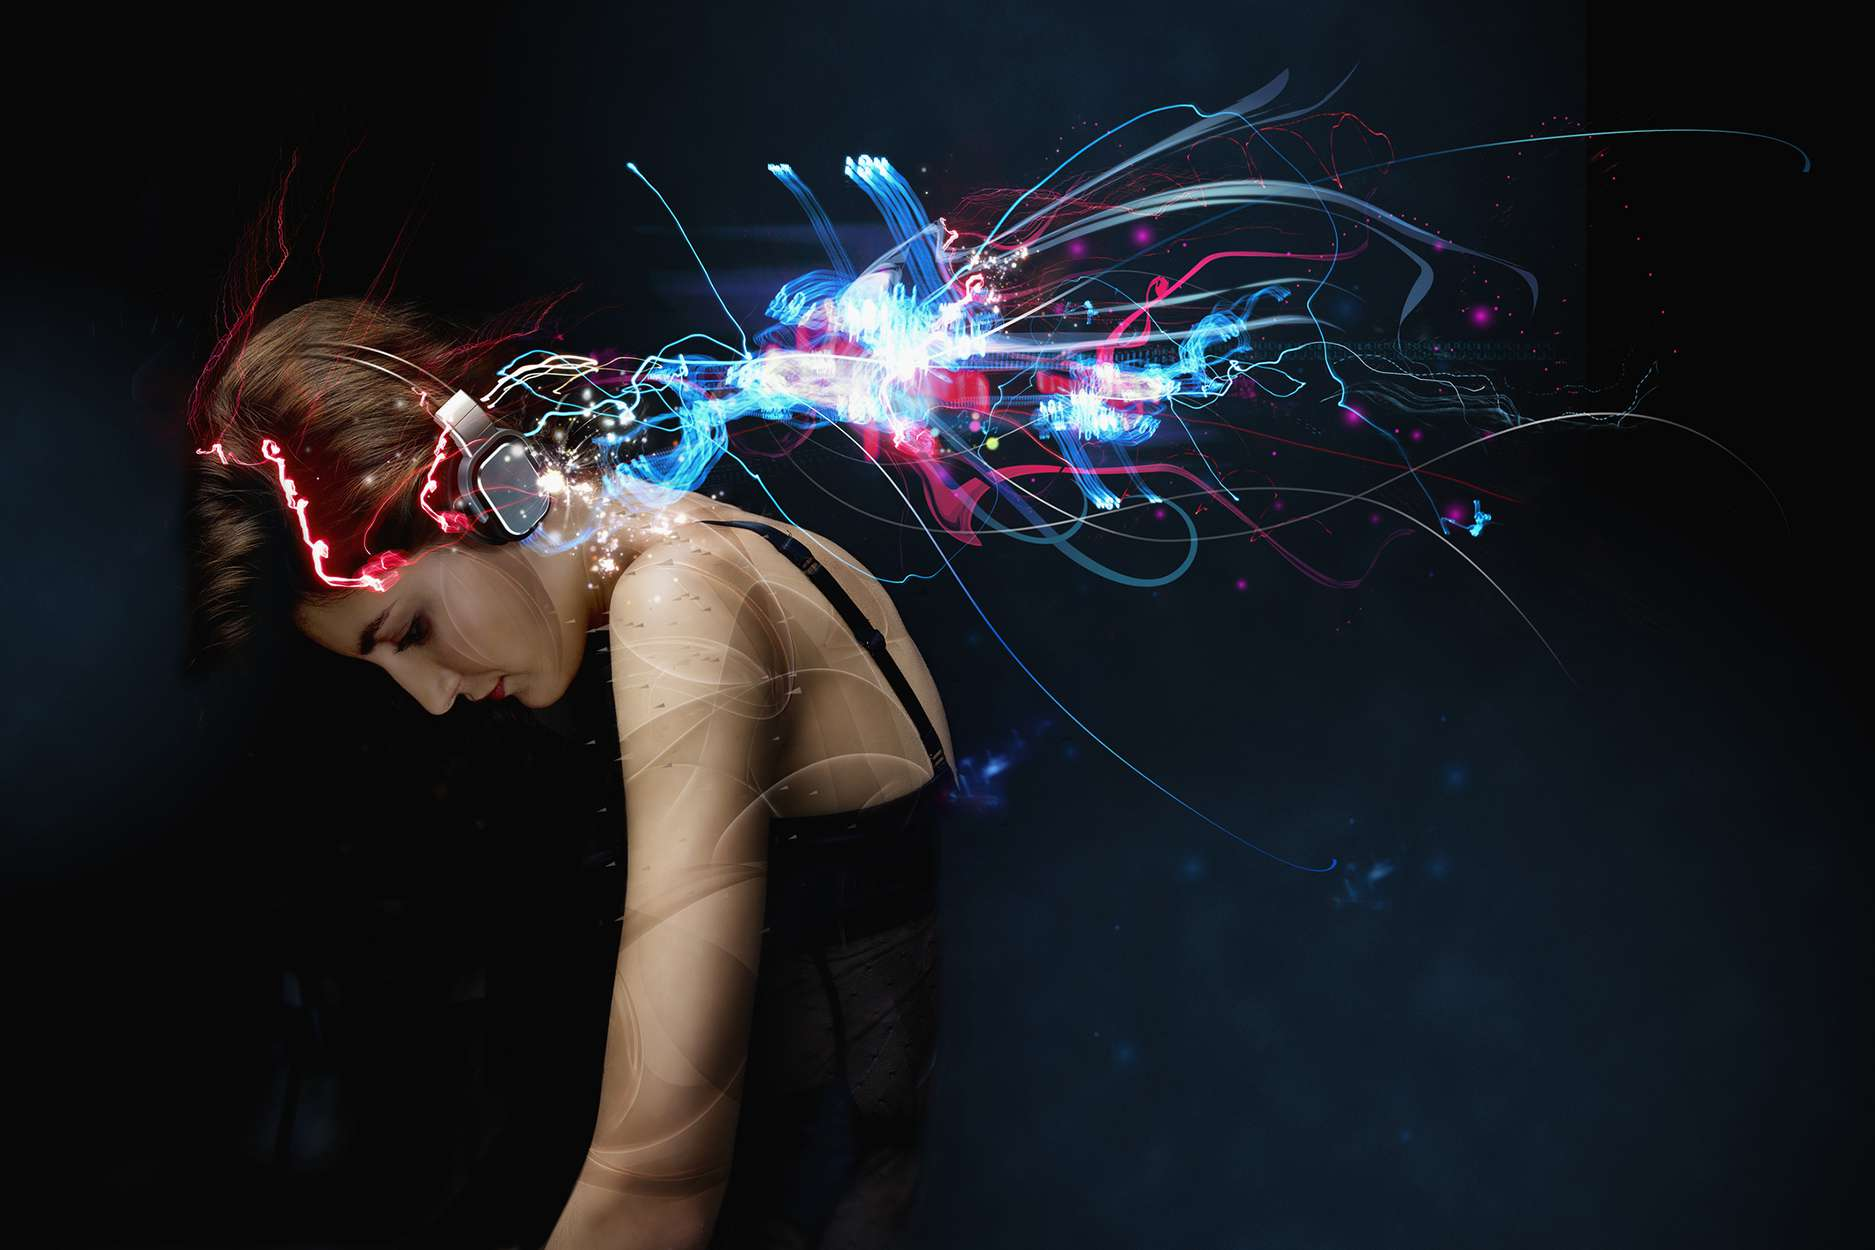 A photo illustration of a woman wearing headphones while streaked lights is drawn around her.